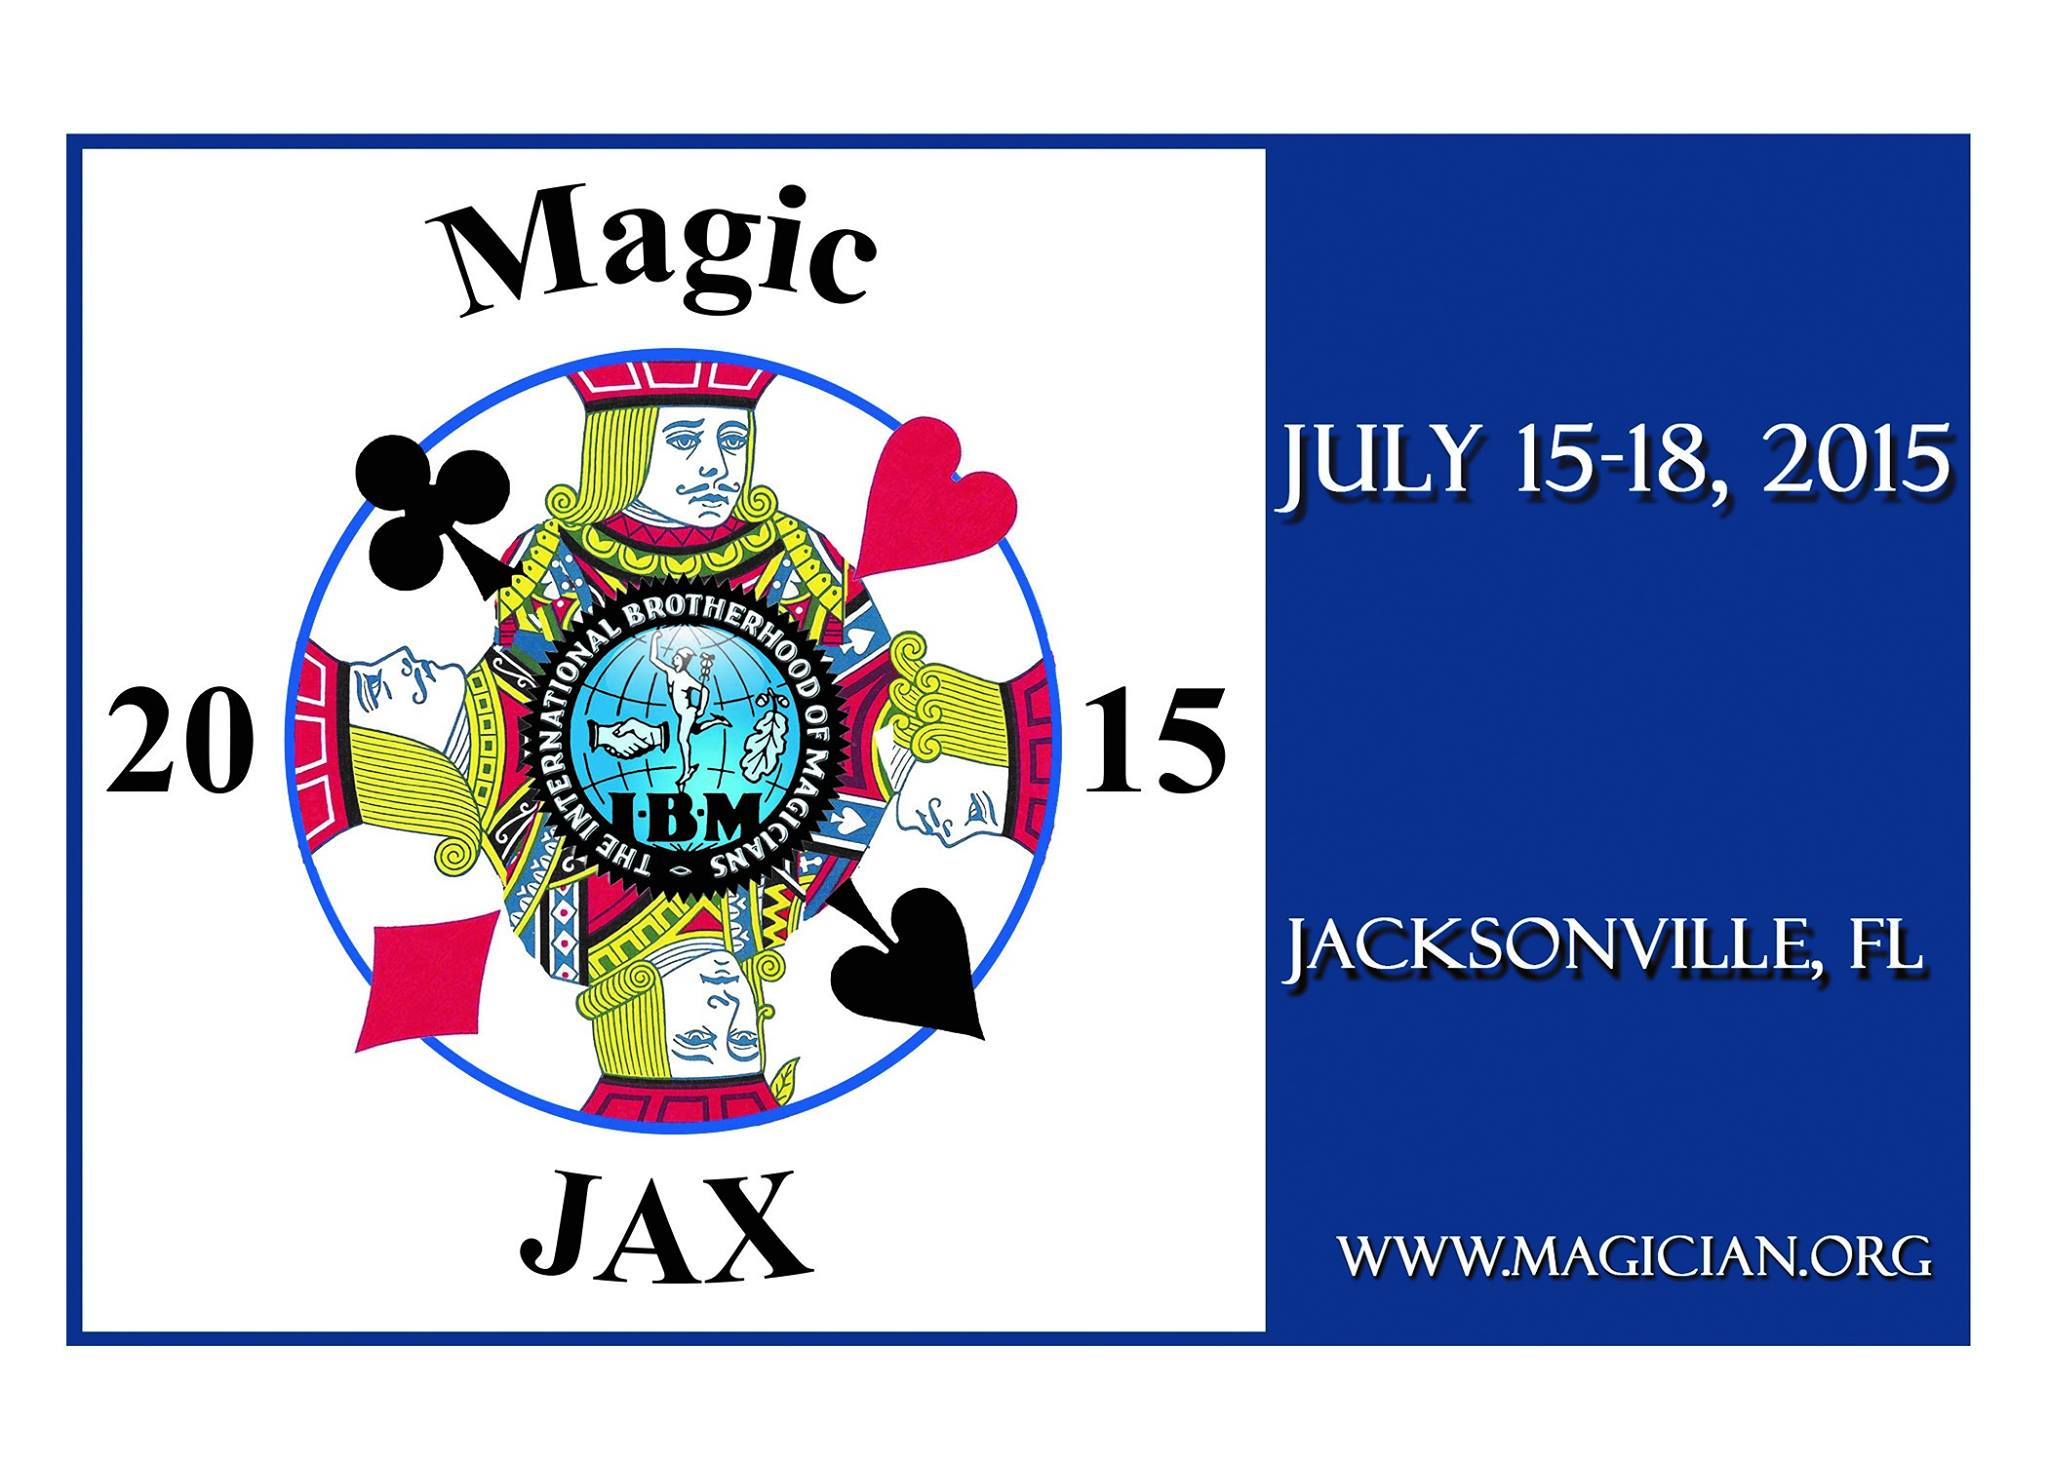 If you have not yet made your reservation for your hotel room at the Hyatt Regency for the Jacksonville convention which takes place July 15th - 18th, 2015, your time is running out!  After June 15th, the convention rate of only $99 will end, and there will be no guarantee of availability of additional room reservations.  If you are planning on attending the Jacksonville convention which promises  to be a fantastic event, register for the convention, and MAKE YOUR HOTEL RESERVATION NOW!!!!  You can register for the convention here:   https://www.magician.org/  convention/ online-registration   You can make your hotel reservation here:   https://aws.passkey.com/g/ 20902549  or by calling the Hyatt Regency directly at 1-800-421-1442.